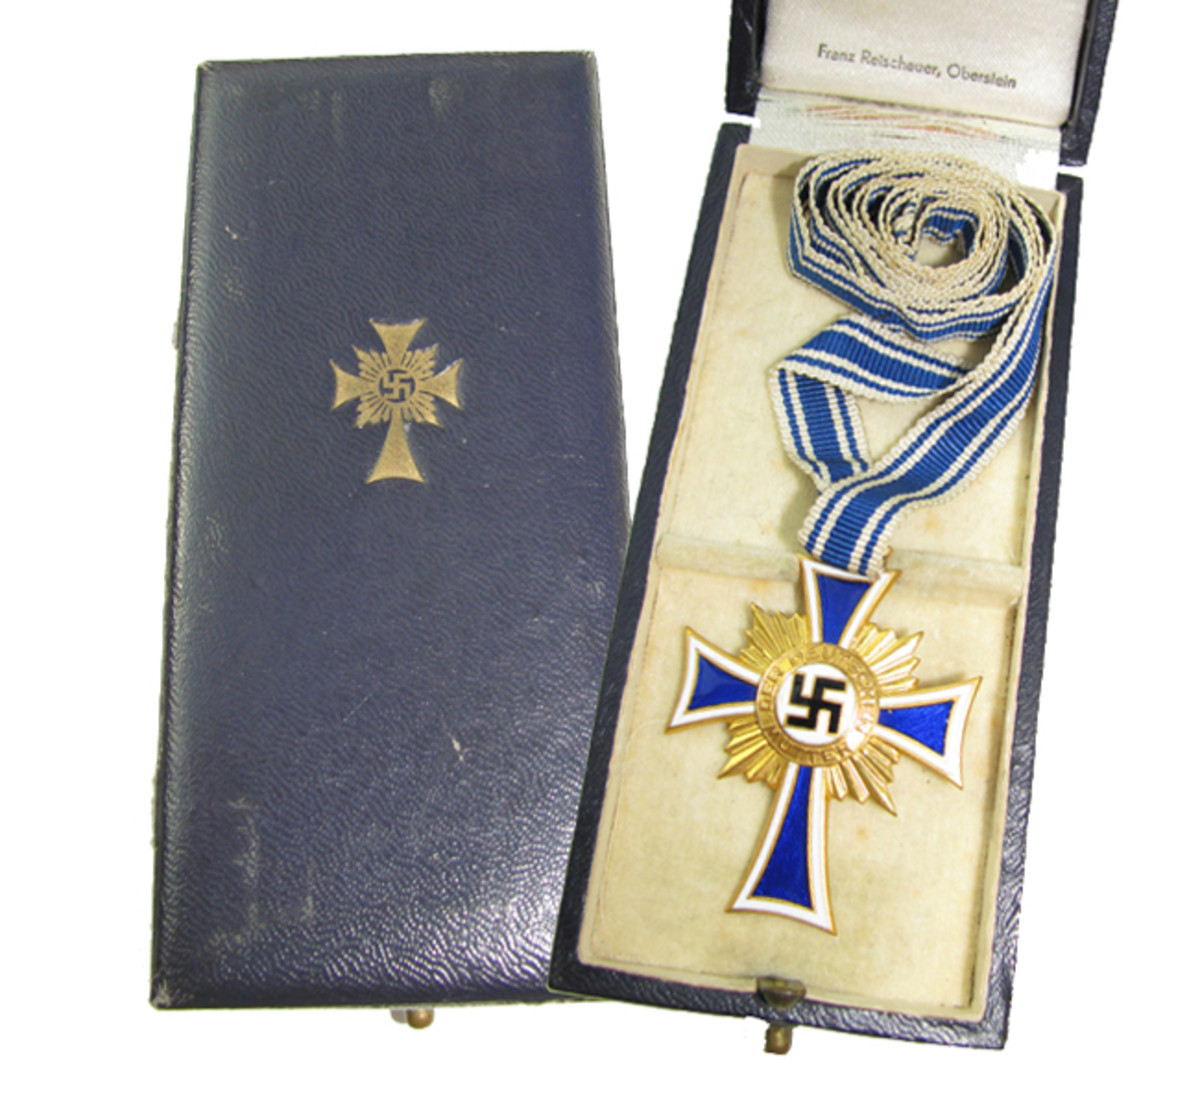 1st Class gold awards such as this Cross manufactured by Franz Reischhauer of Oberstein were presented in leatherette cases